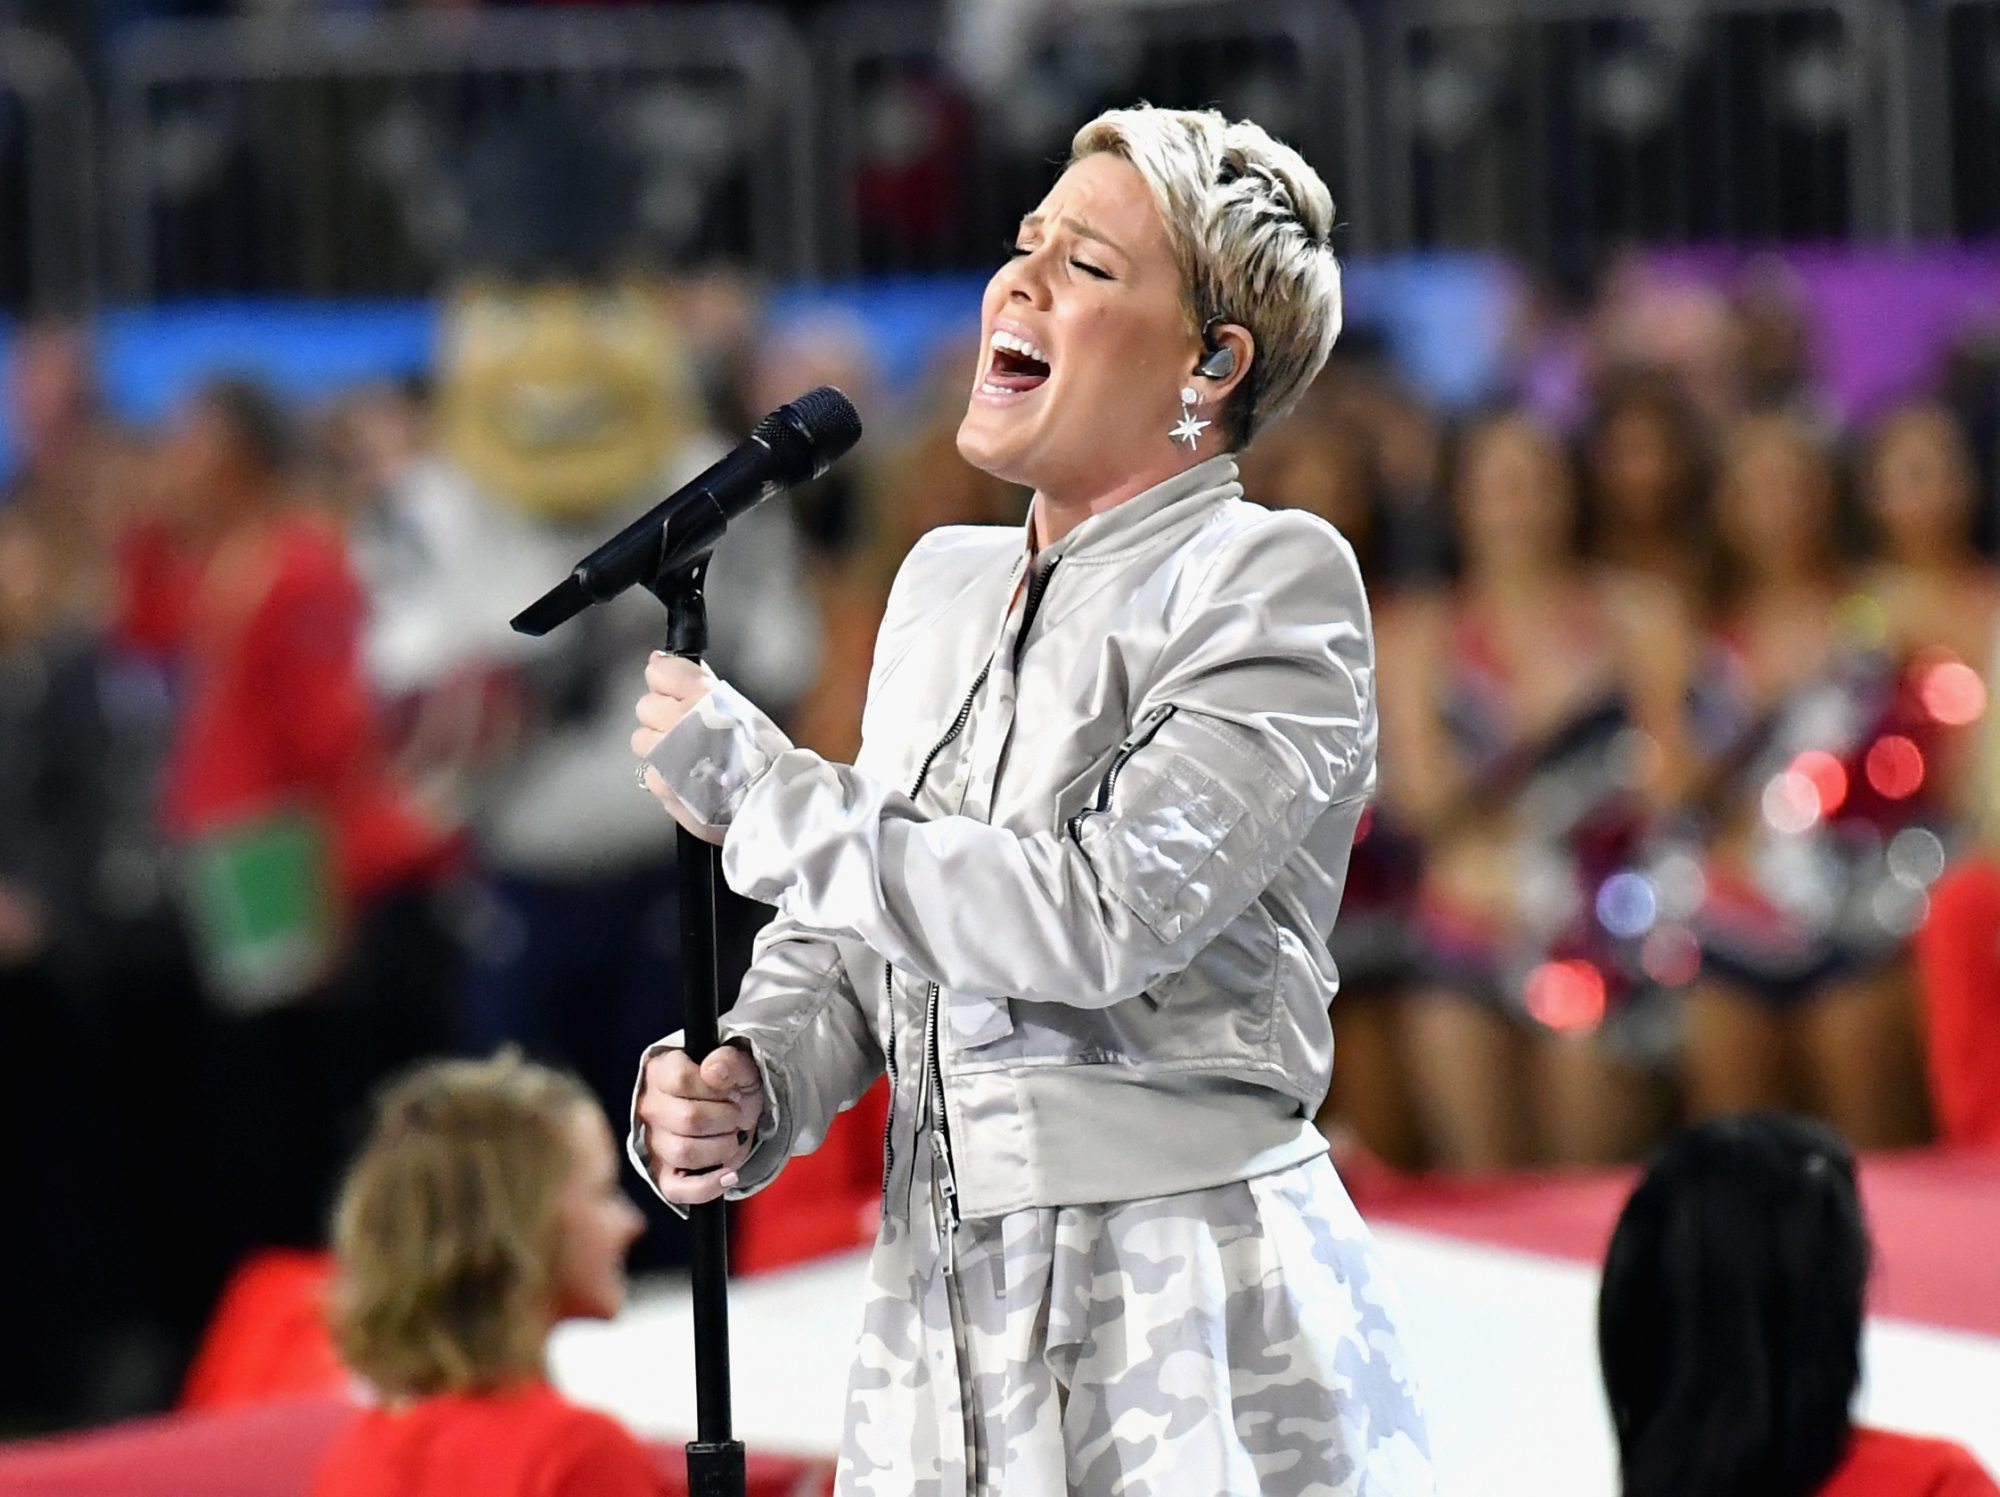 Pink Blasts Twitter Troll for Criticizing Her Super Bowl National Anthem Performance